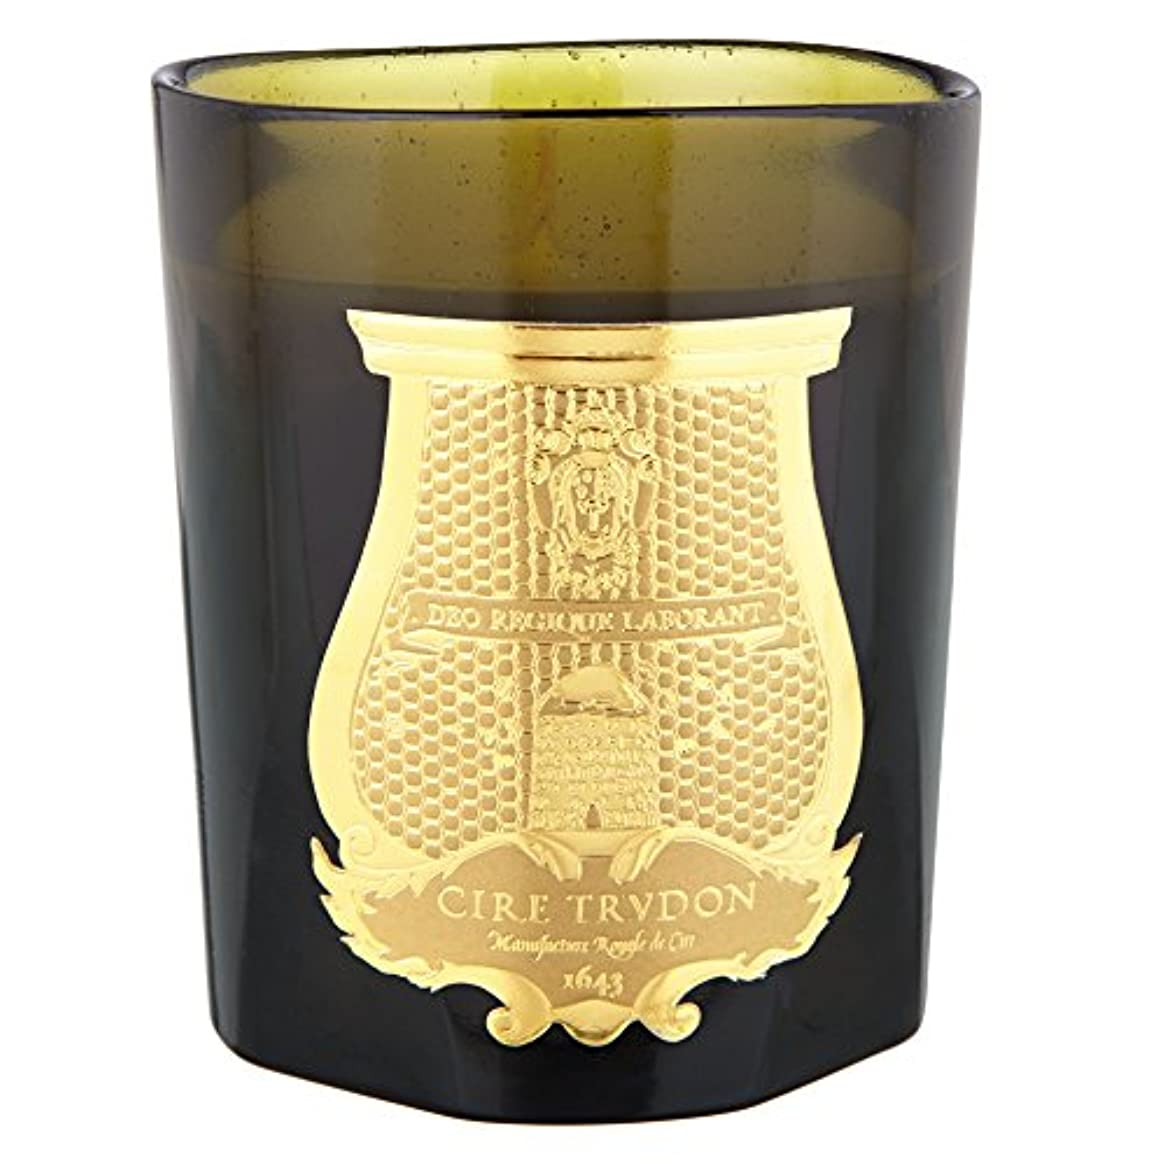 Cire Trudon Proletaire Scented Candle (Pack of 2) - Cire Trudon Proletaire香りのキャンドル (Cire Trudon) (x2) [並行輸入品]